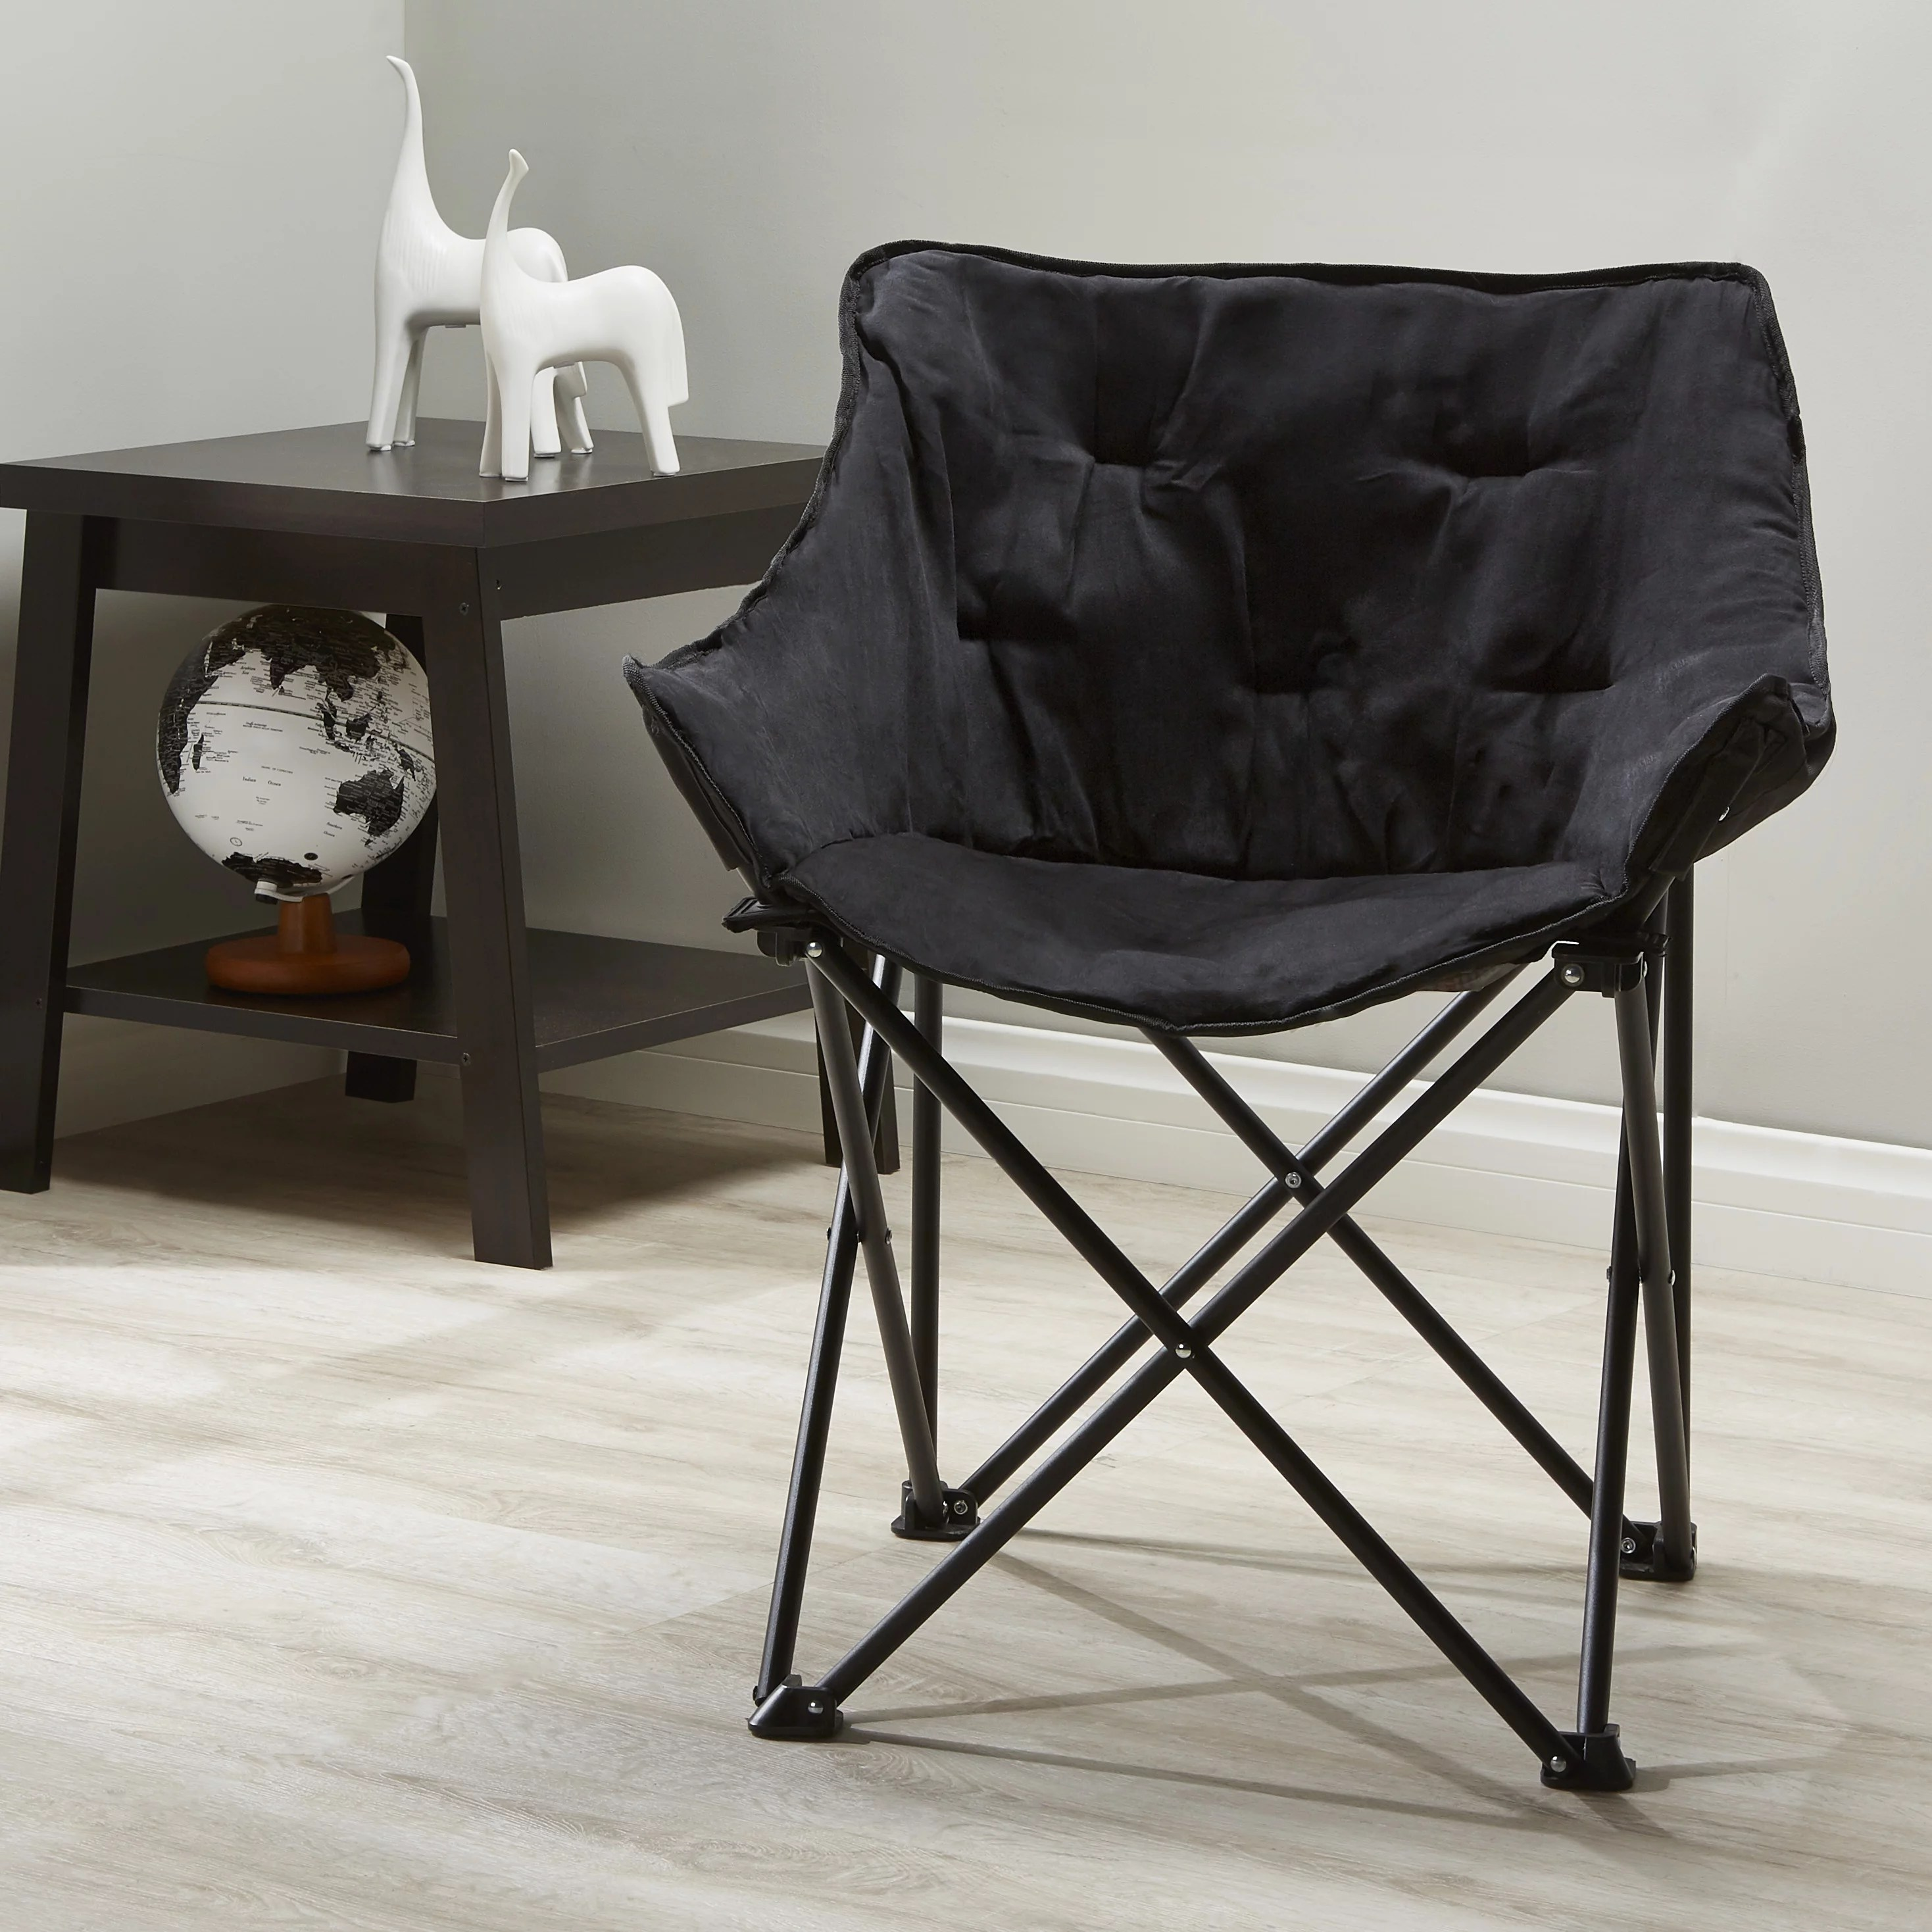 Collapsible Chair Mainstays Collapsible Square Chair Black Microsuede